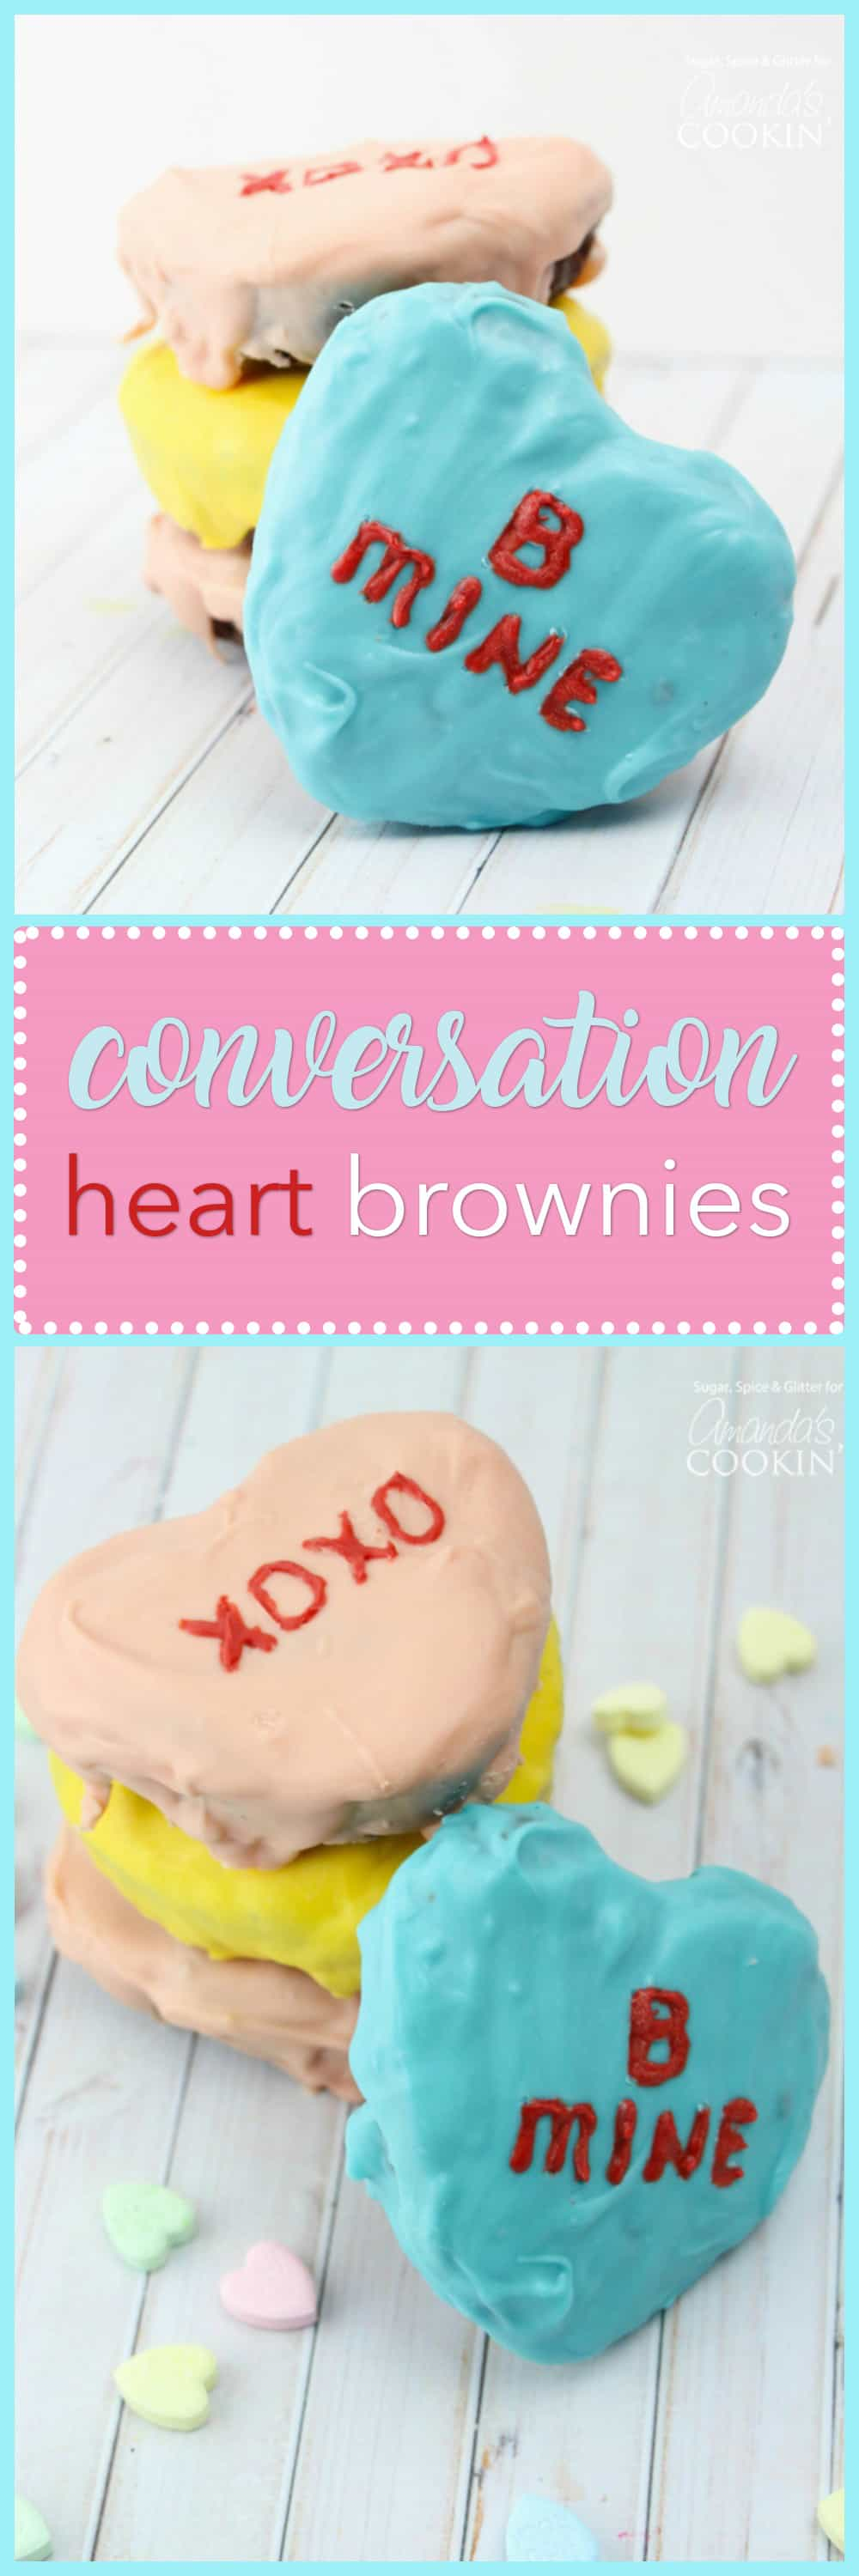 These Conversation Heart Brownies make great Valentine's Day treats for teachers, friends or family! Decorate with your favorite colors and quotes.